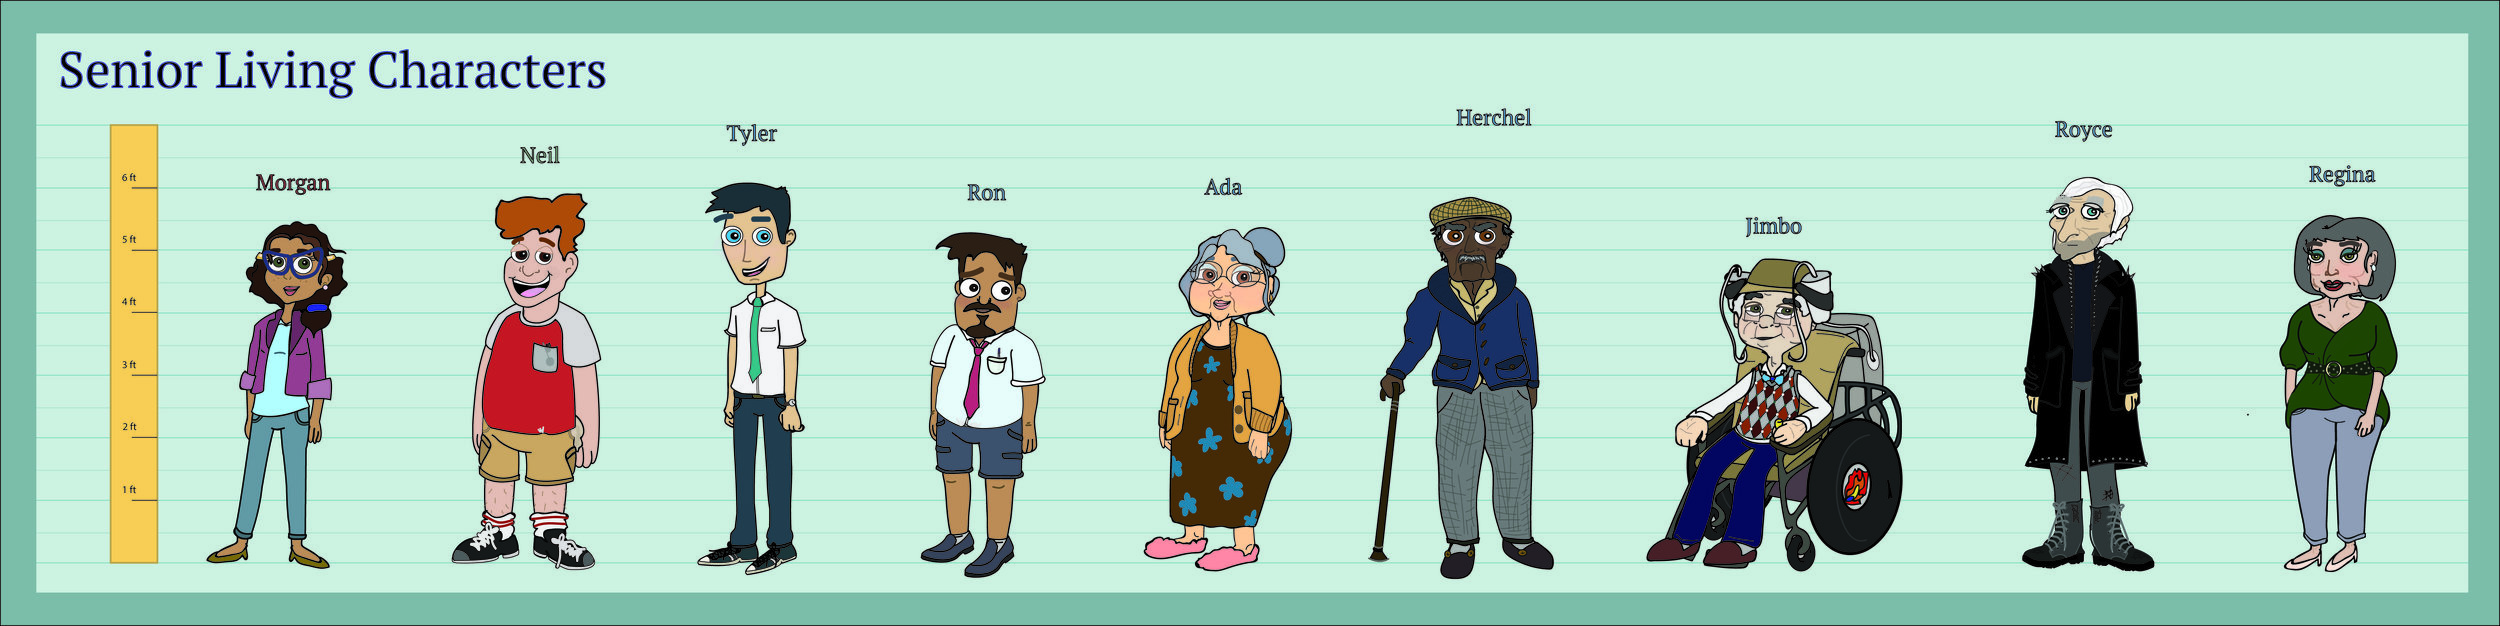 The second draft of character designs.